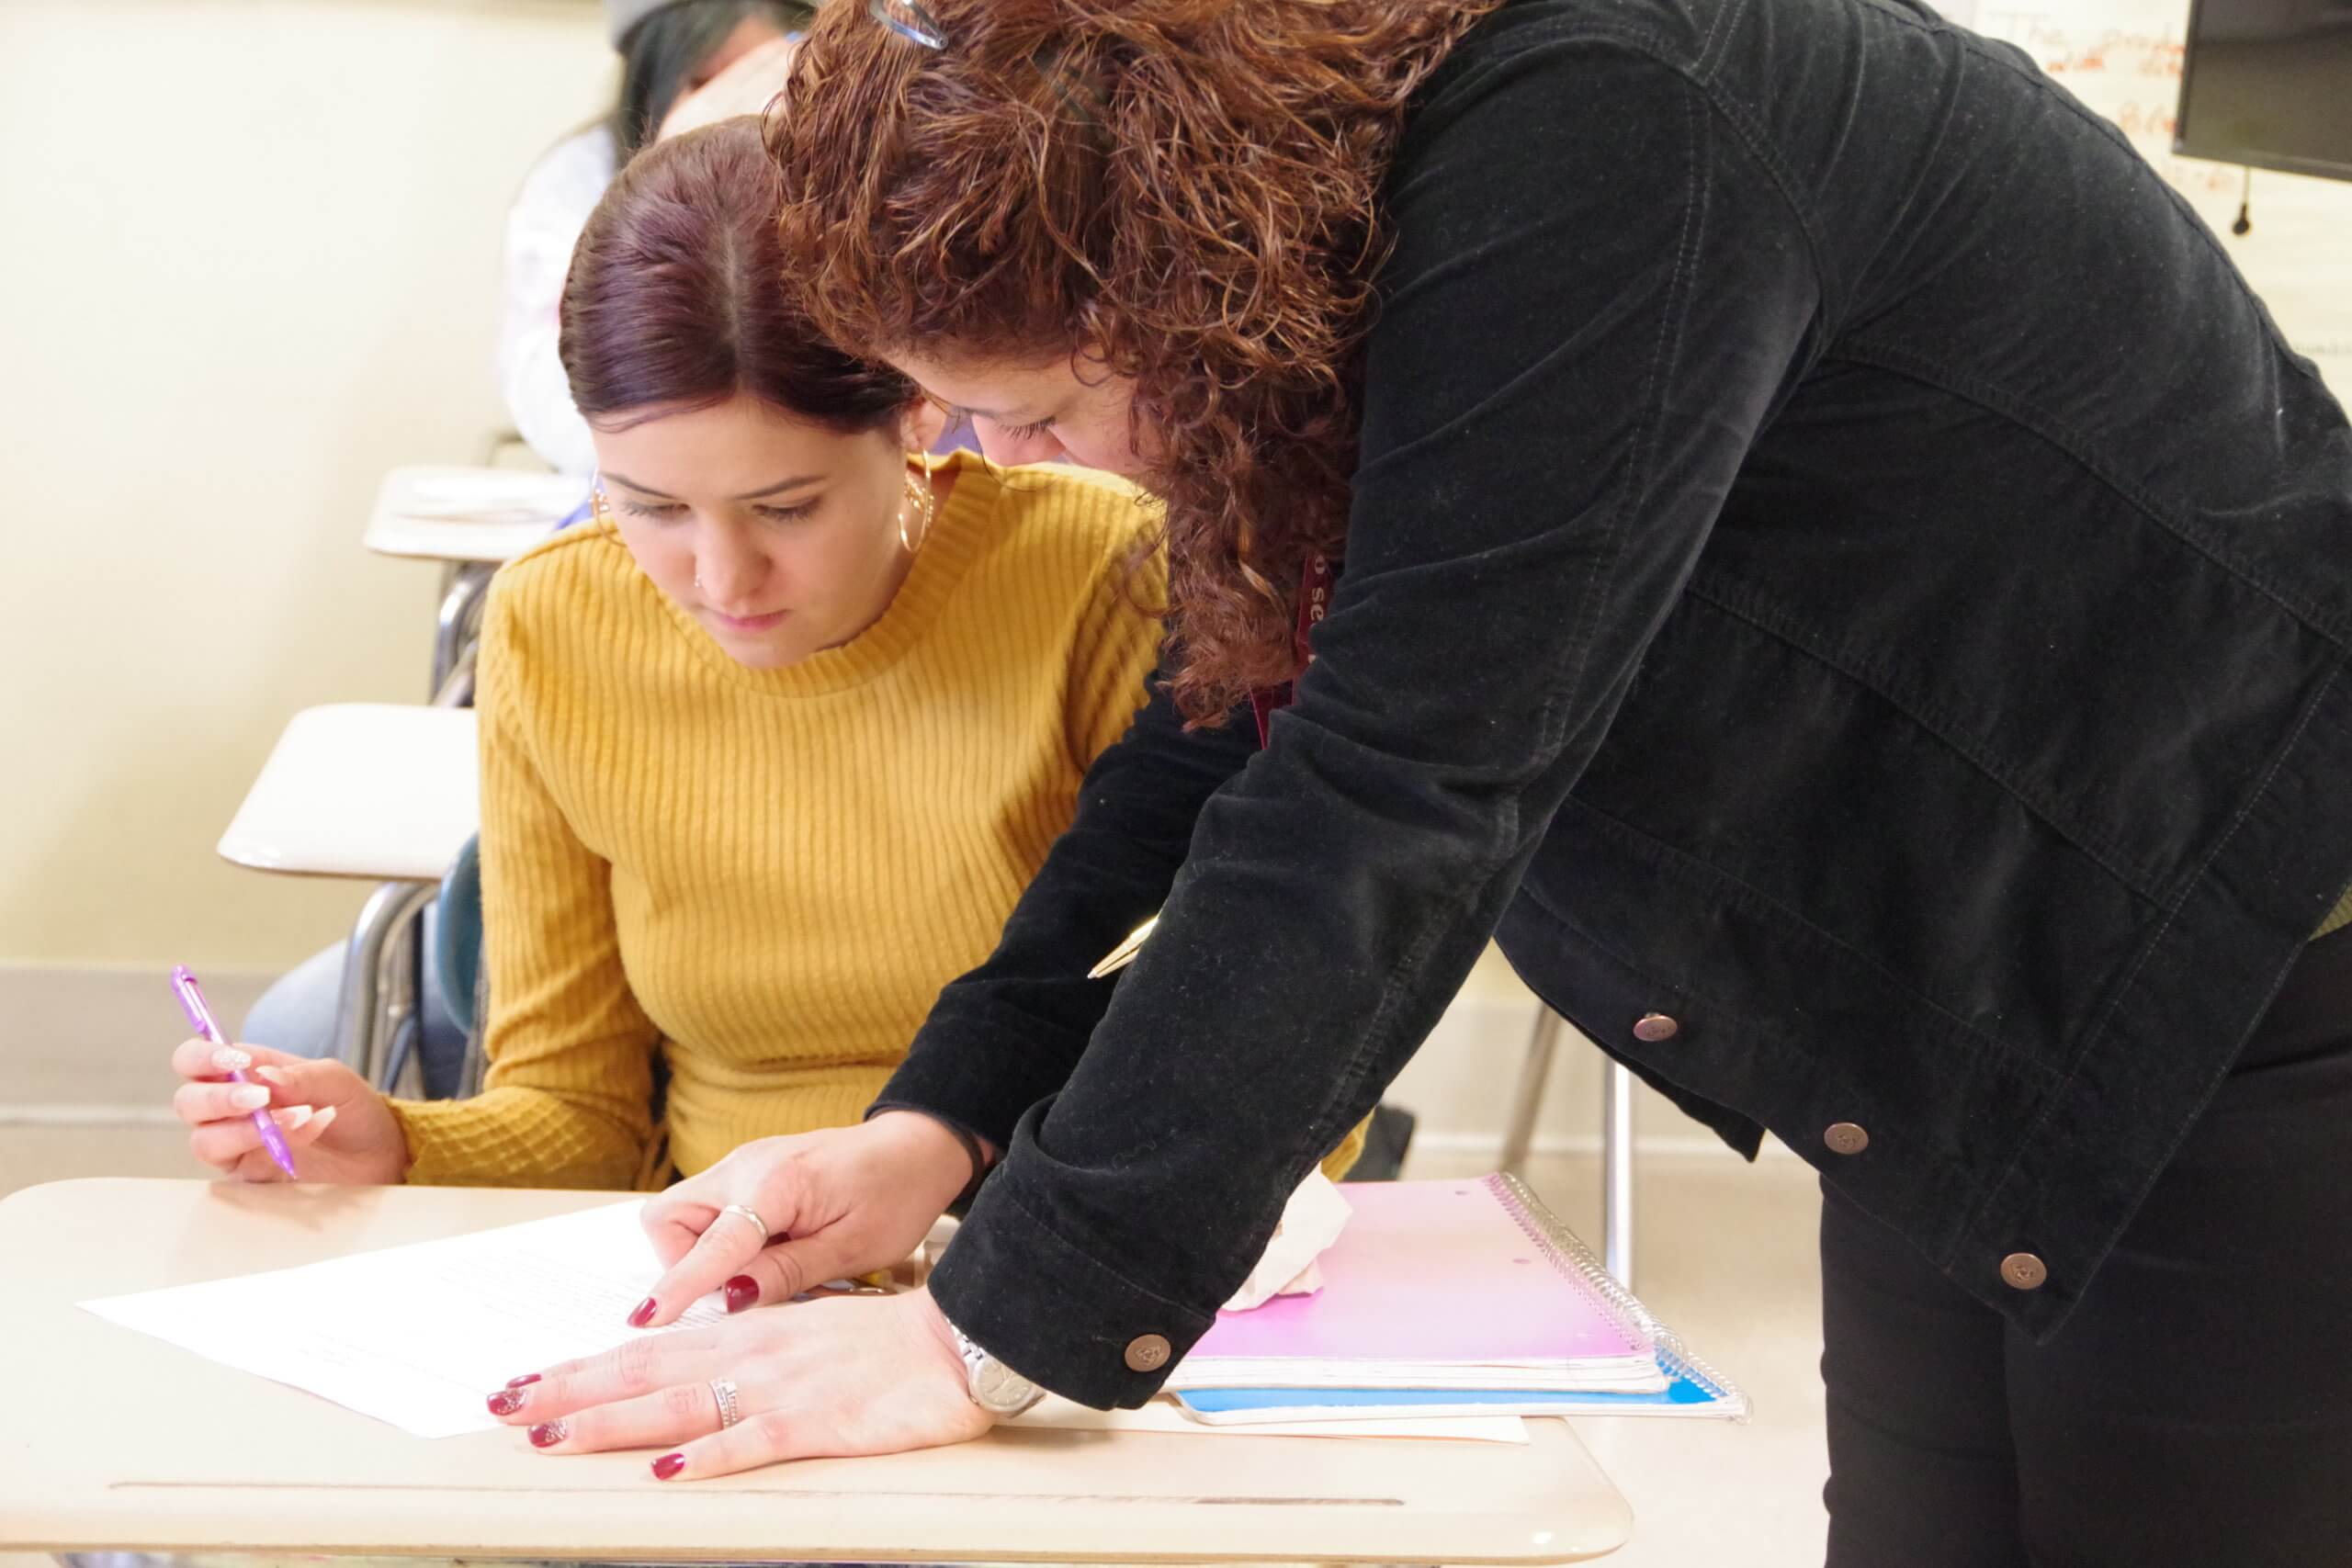 Female student working with a female teacher in class